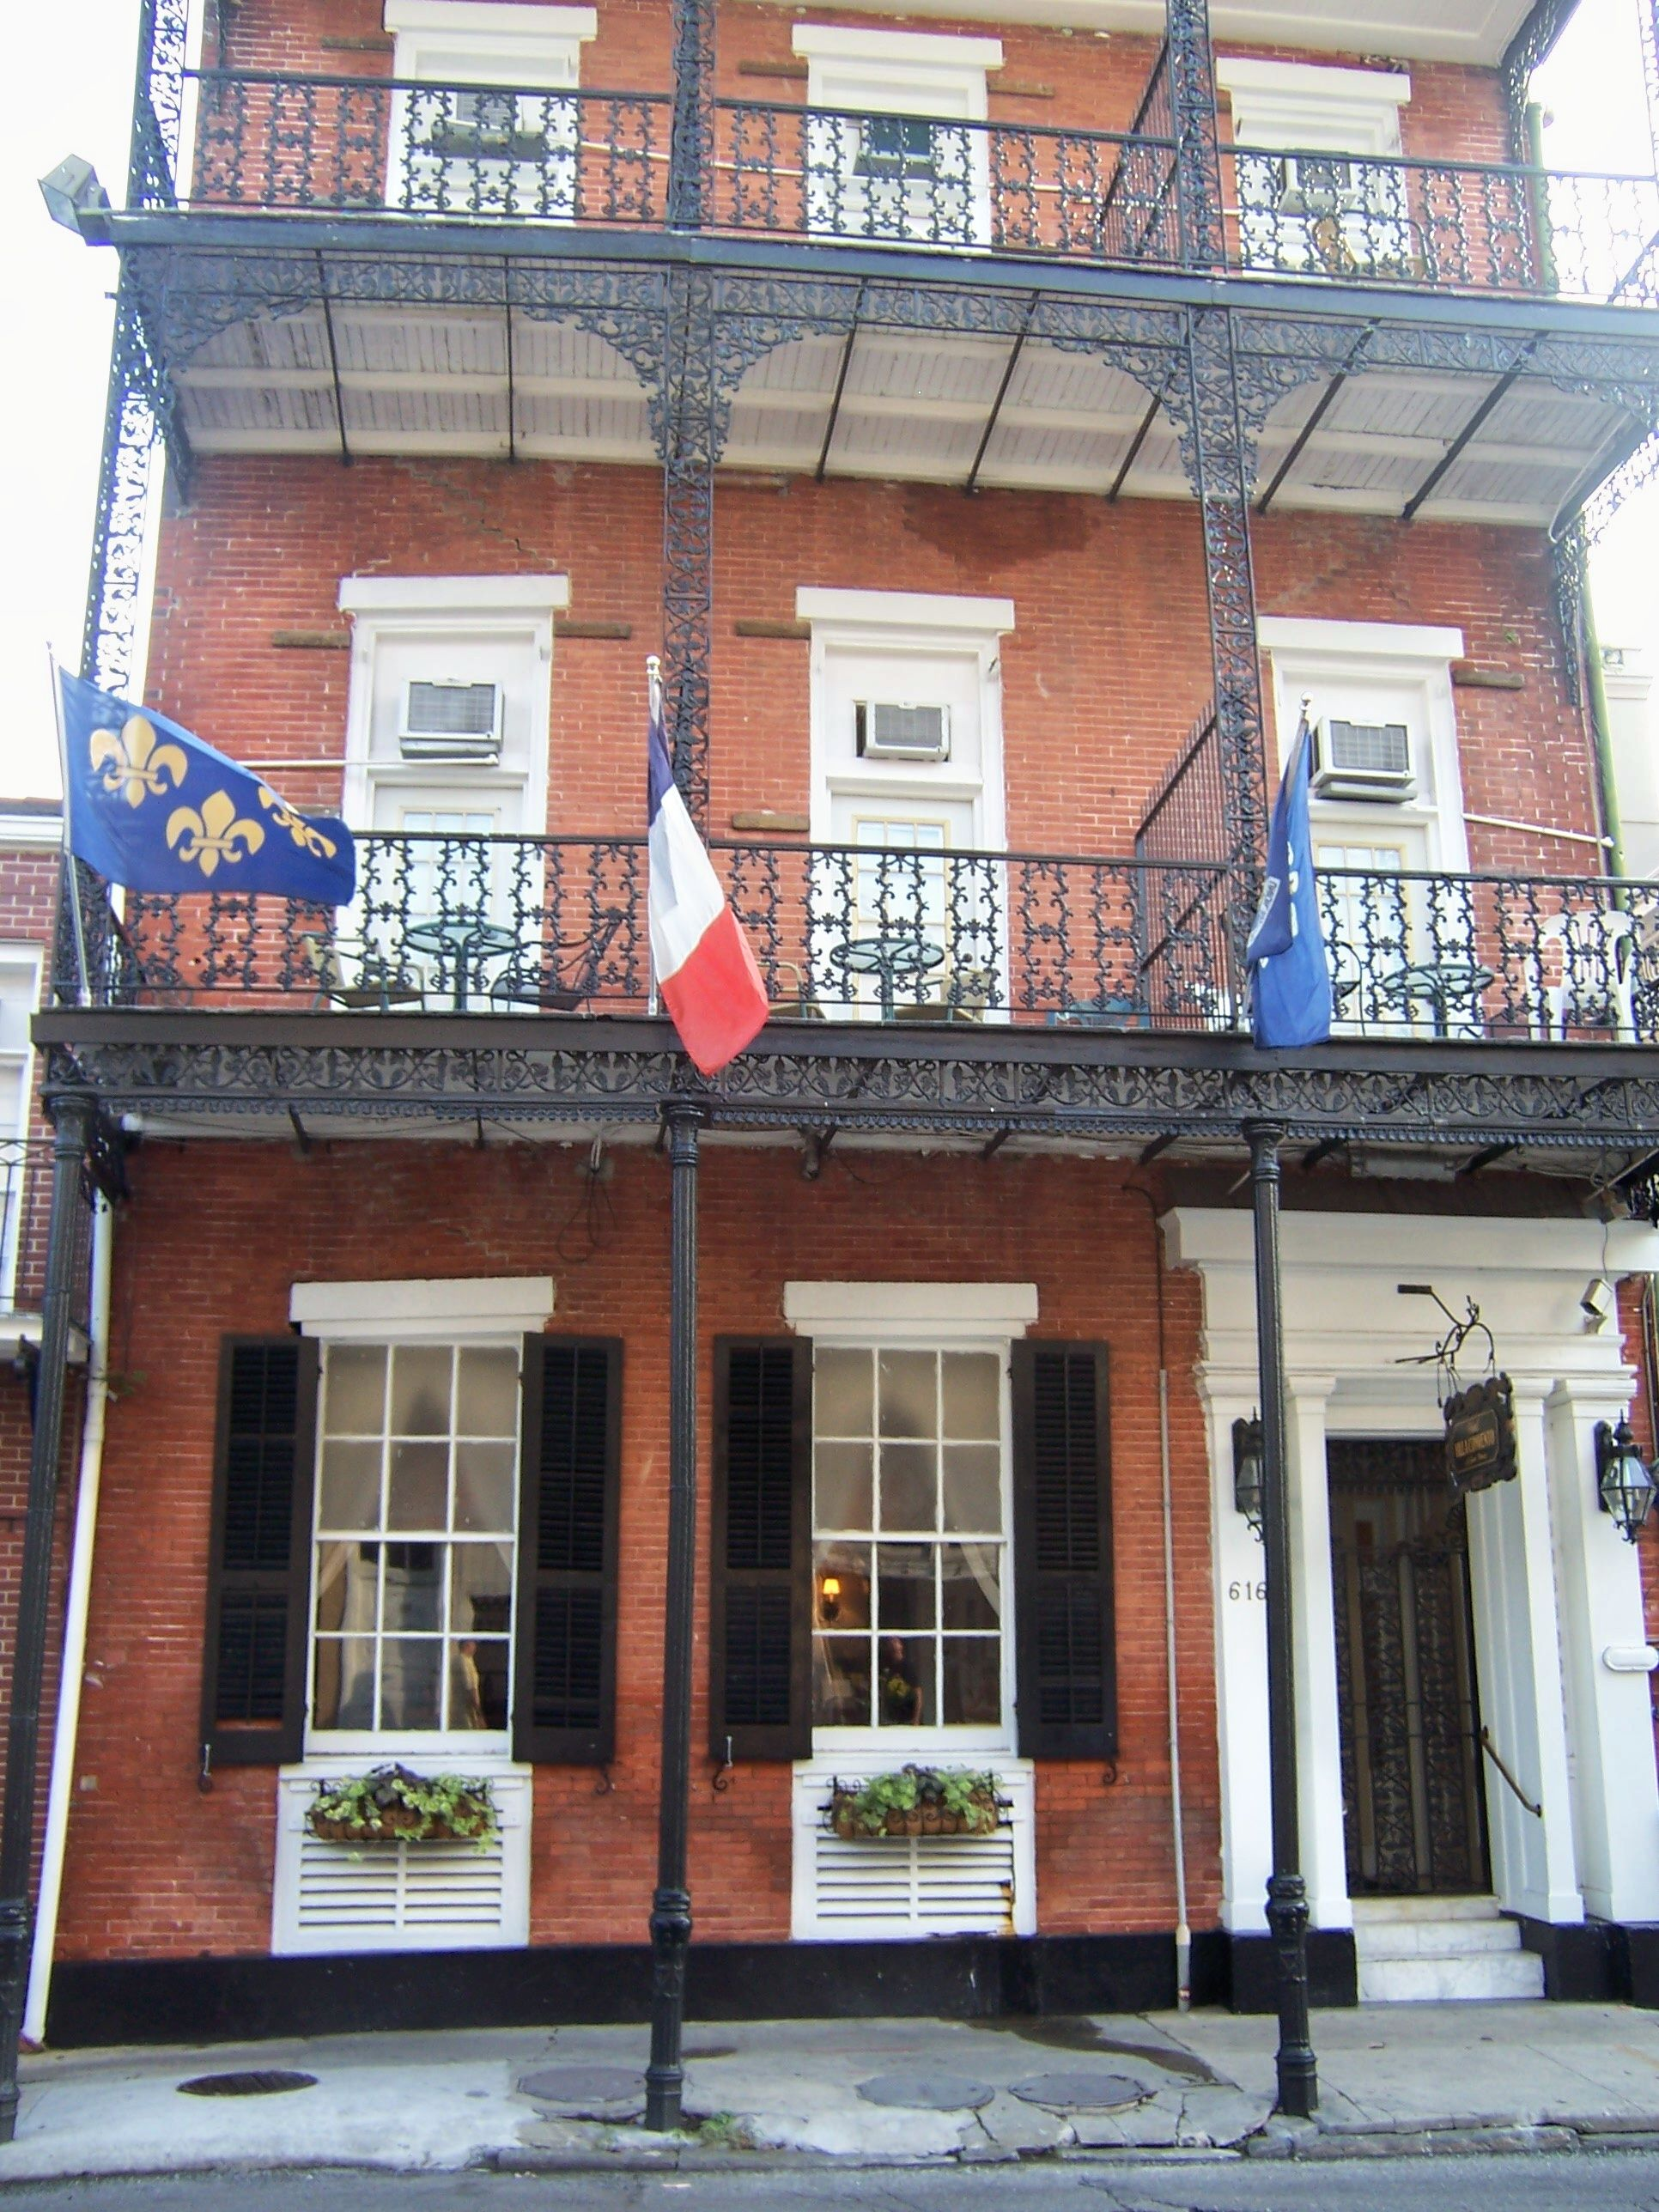 Hotel Villa Convento New Orleans our favorite place to stay